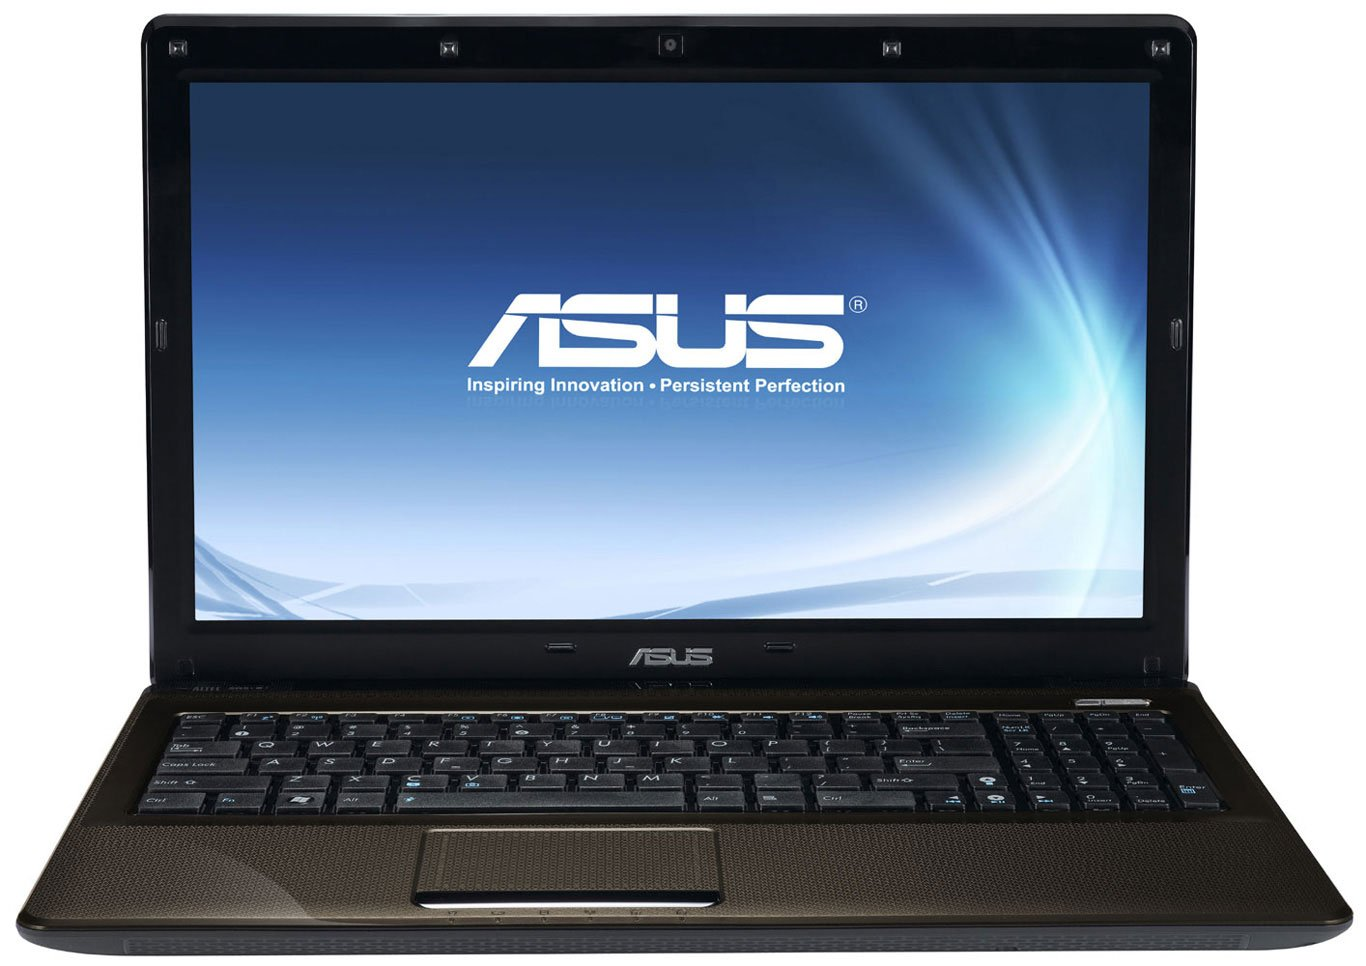 ASUS A52JC INTEL TURBO BOOST DRIVERS FOR MAC